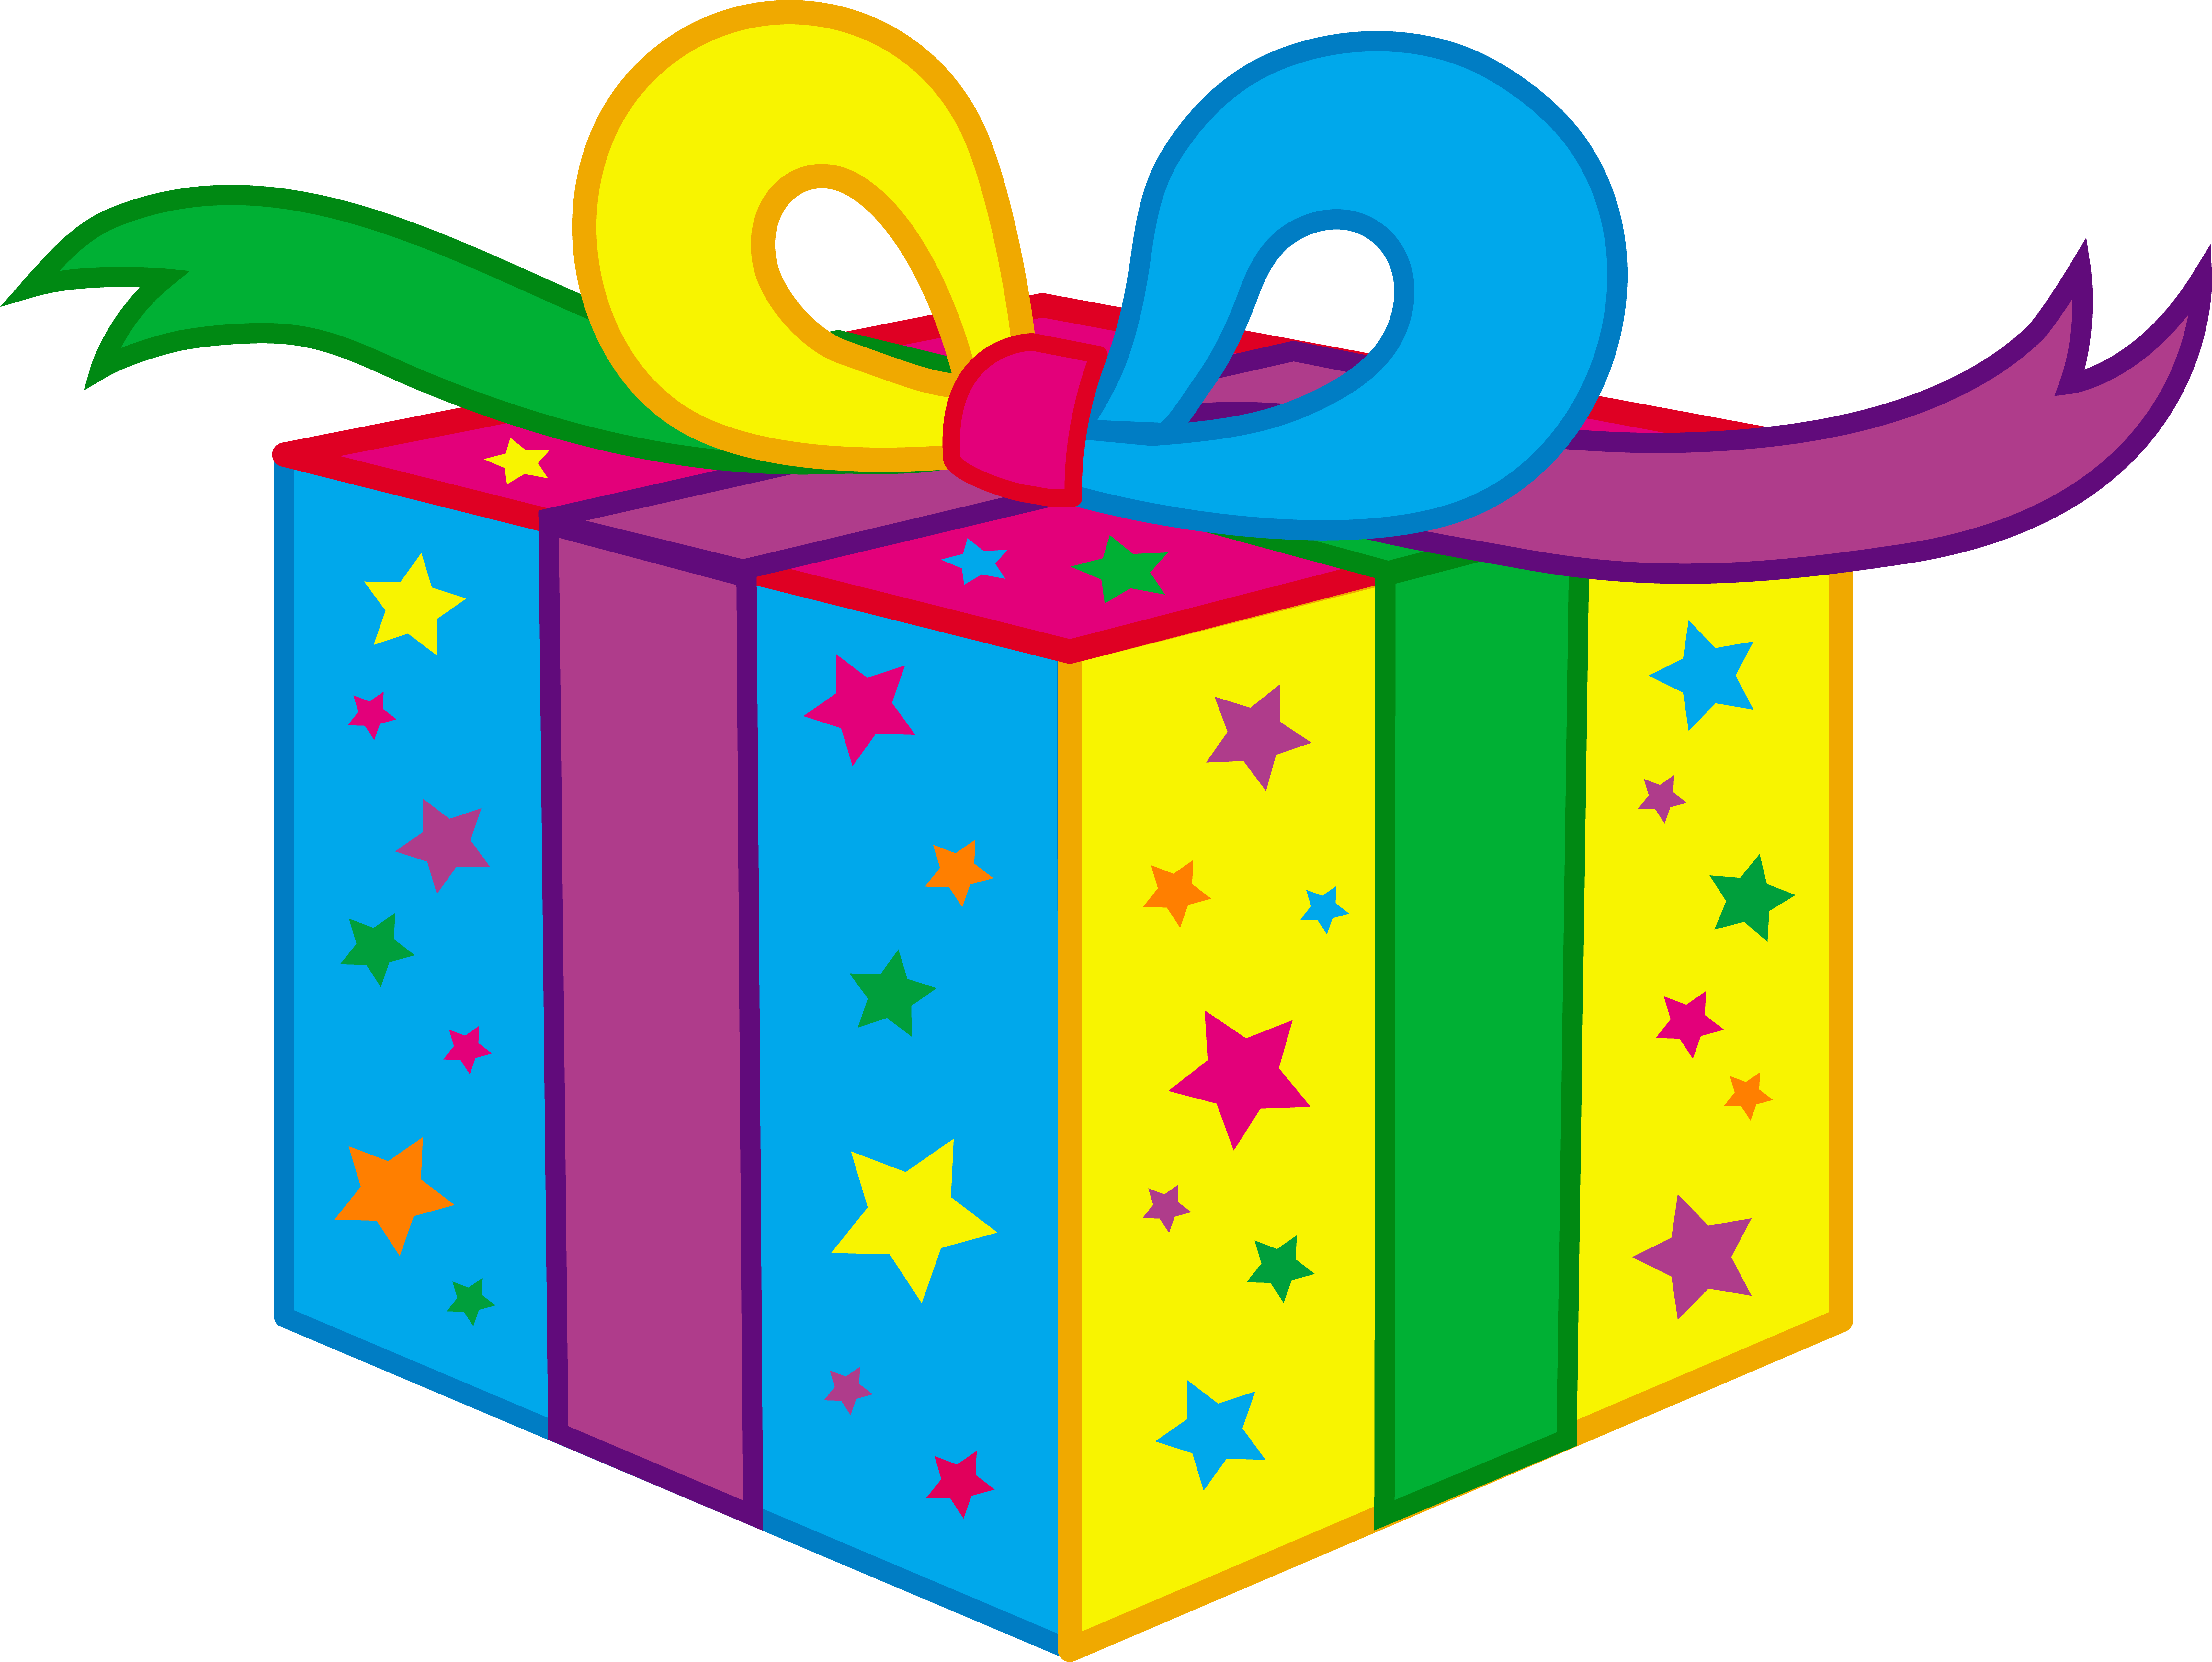 Birthday presents clipart picture transparent library Free Birthday Gift Cliparts, Download Free Clip Art, Free Clip Art ... picture transparent library